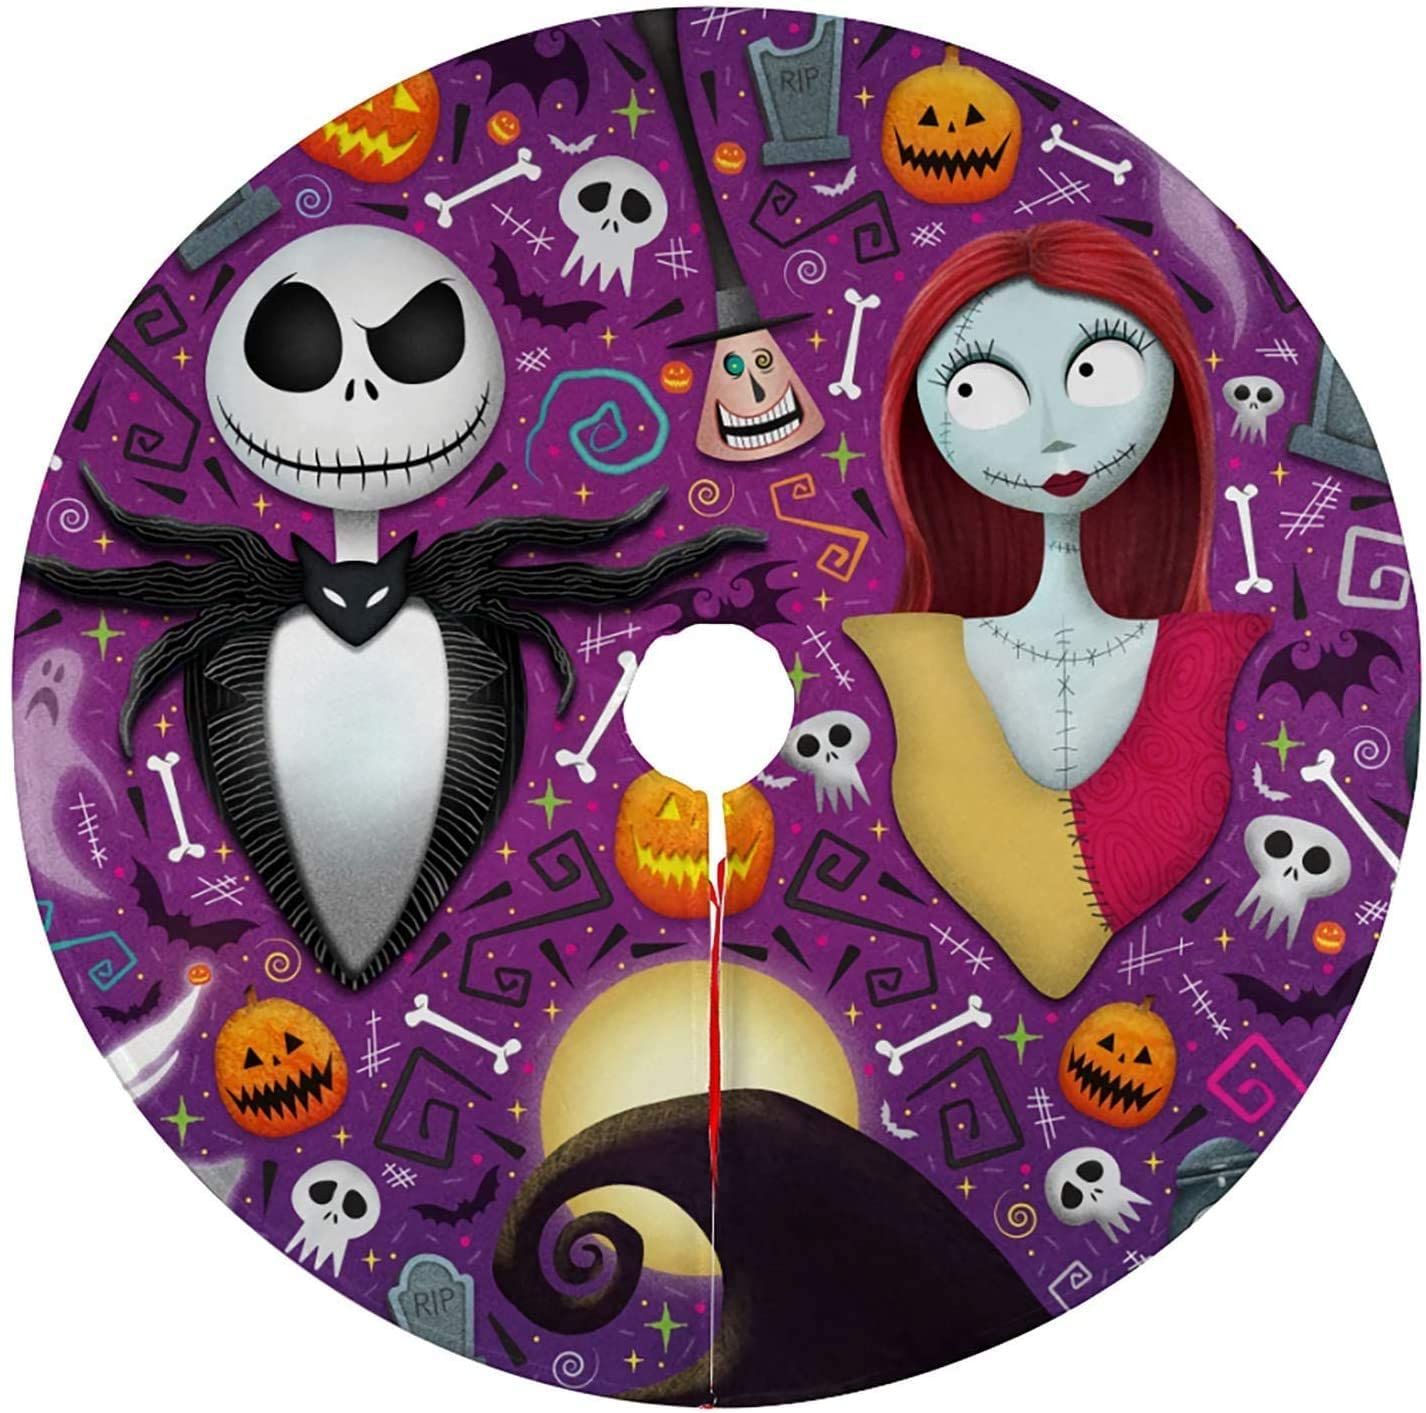 Hlashxh The Nightmare Before Christmas Tree Skirt Kits Mat Decorations Hall-oween Holiday Party Decoration (Nightmare Christmas6 48in)